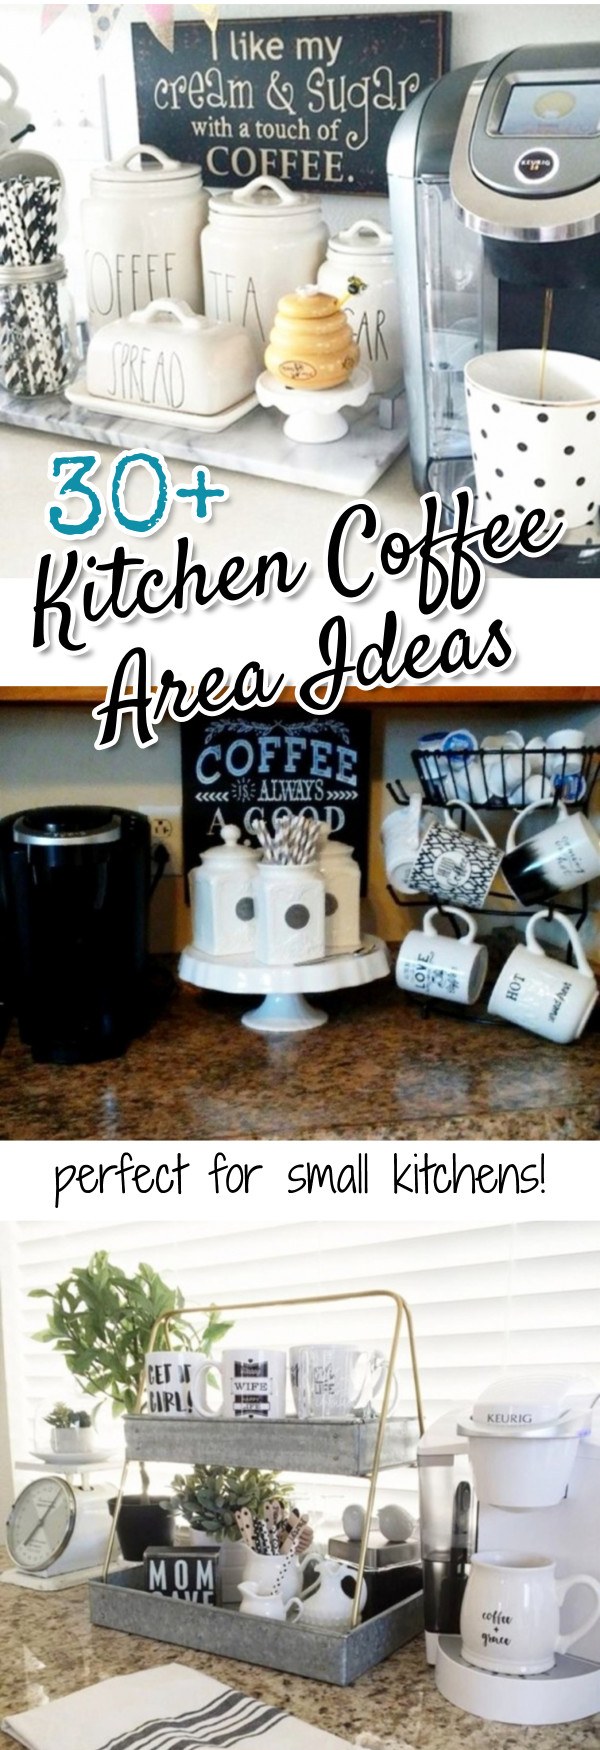 Gorgeous Kitchen Coffee Area Ideas we LOVE!  Perfect ideas for small kitchens, apartment kitchens, condo or lakehouse kitchens - and even as a dorm room coffee bar set up #homedecorideas #diyhomedecor